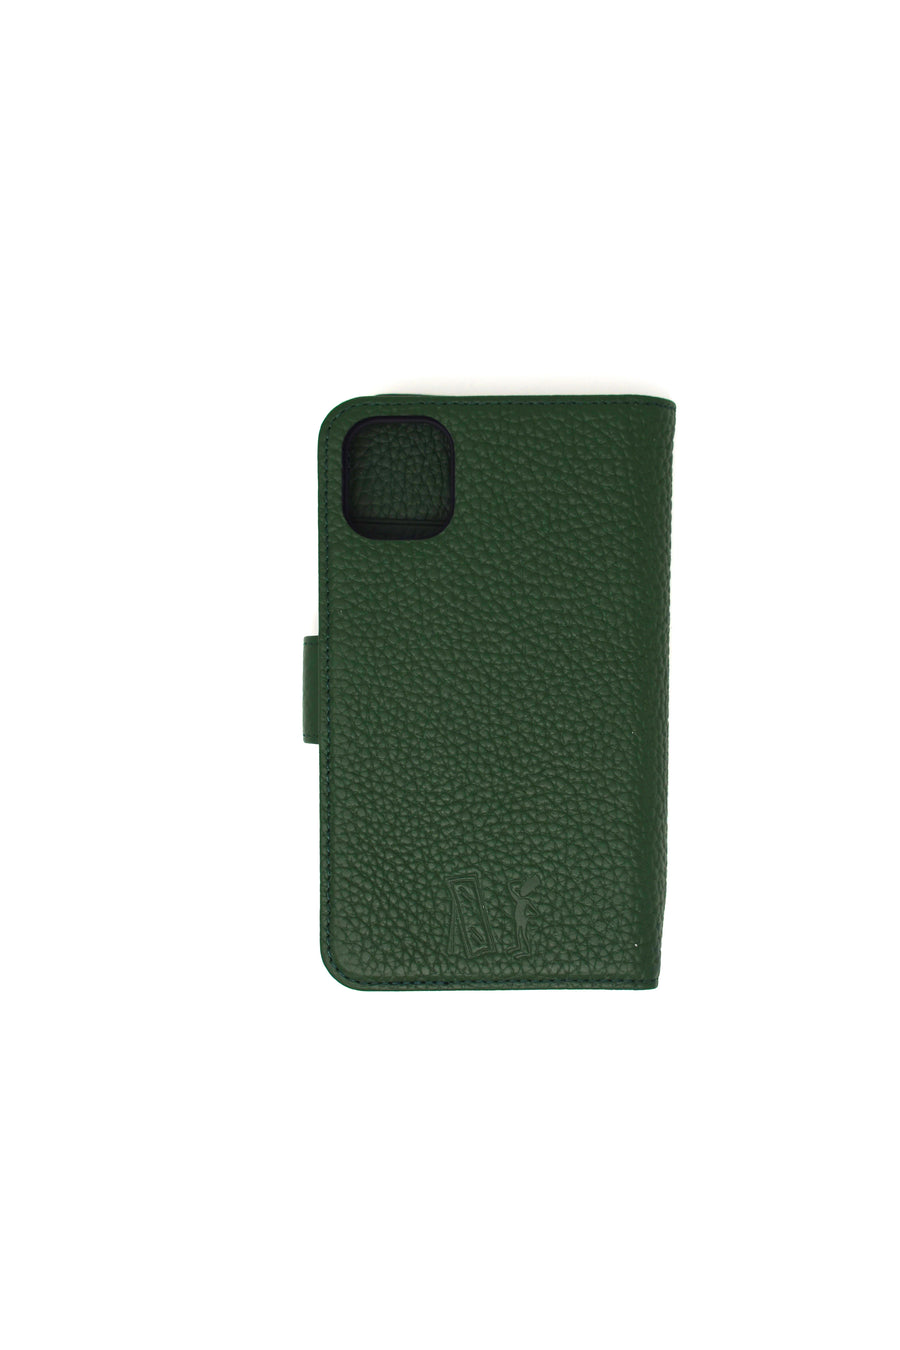 Note Taker Iphone 11 Leather Wallet Dark Green